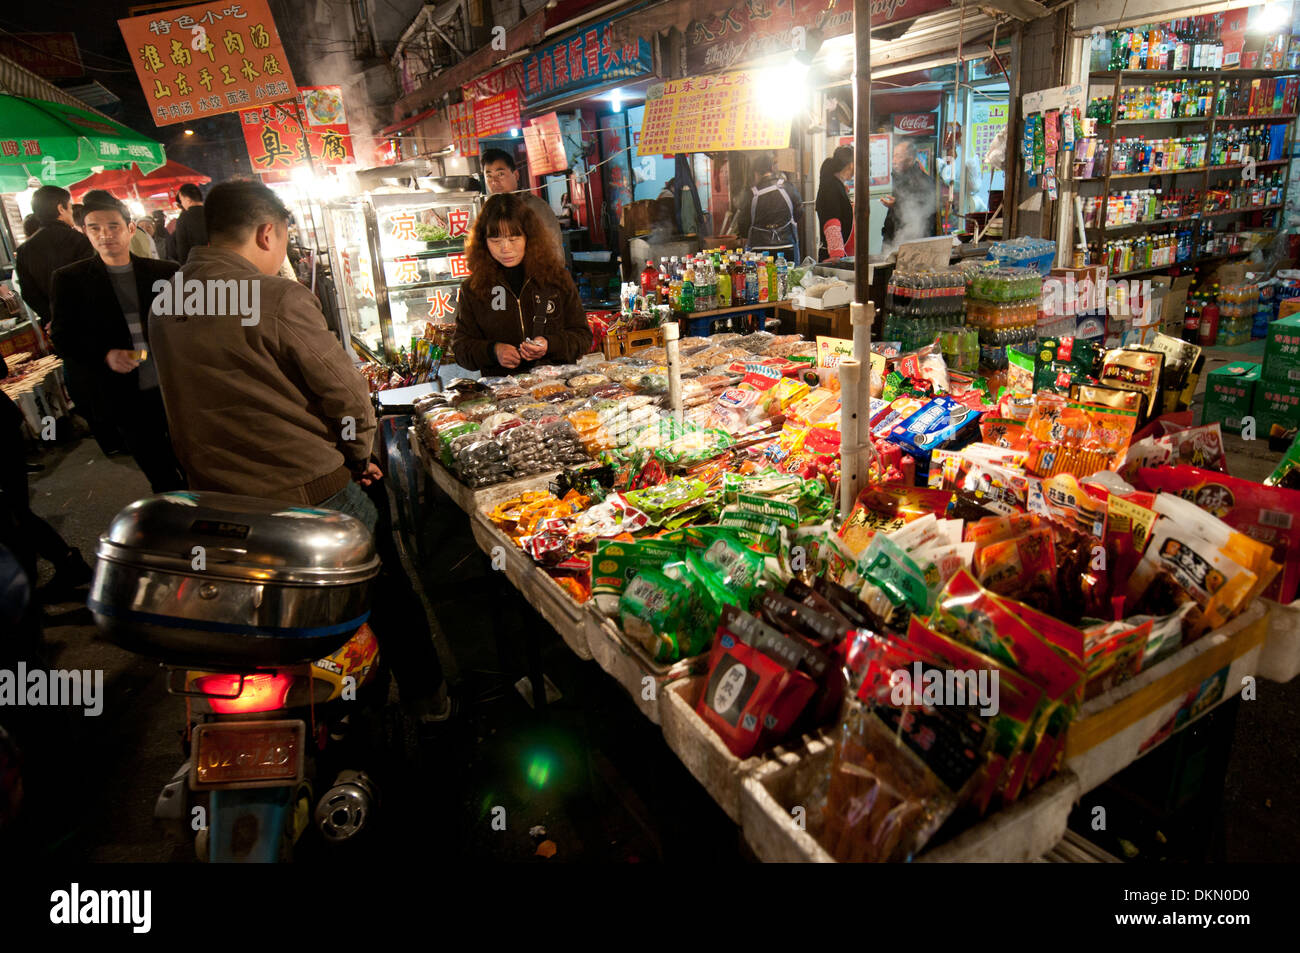 night street food market in Shanghai, China - Stock Image